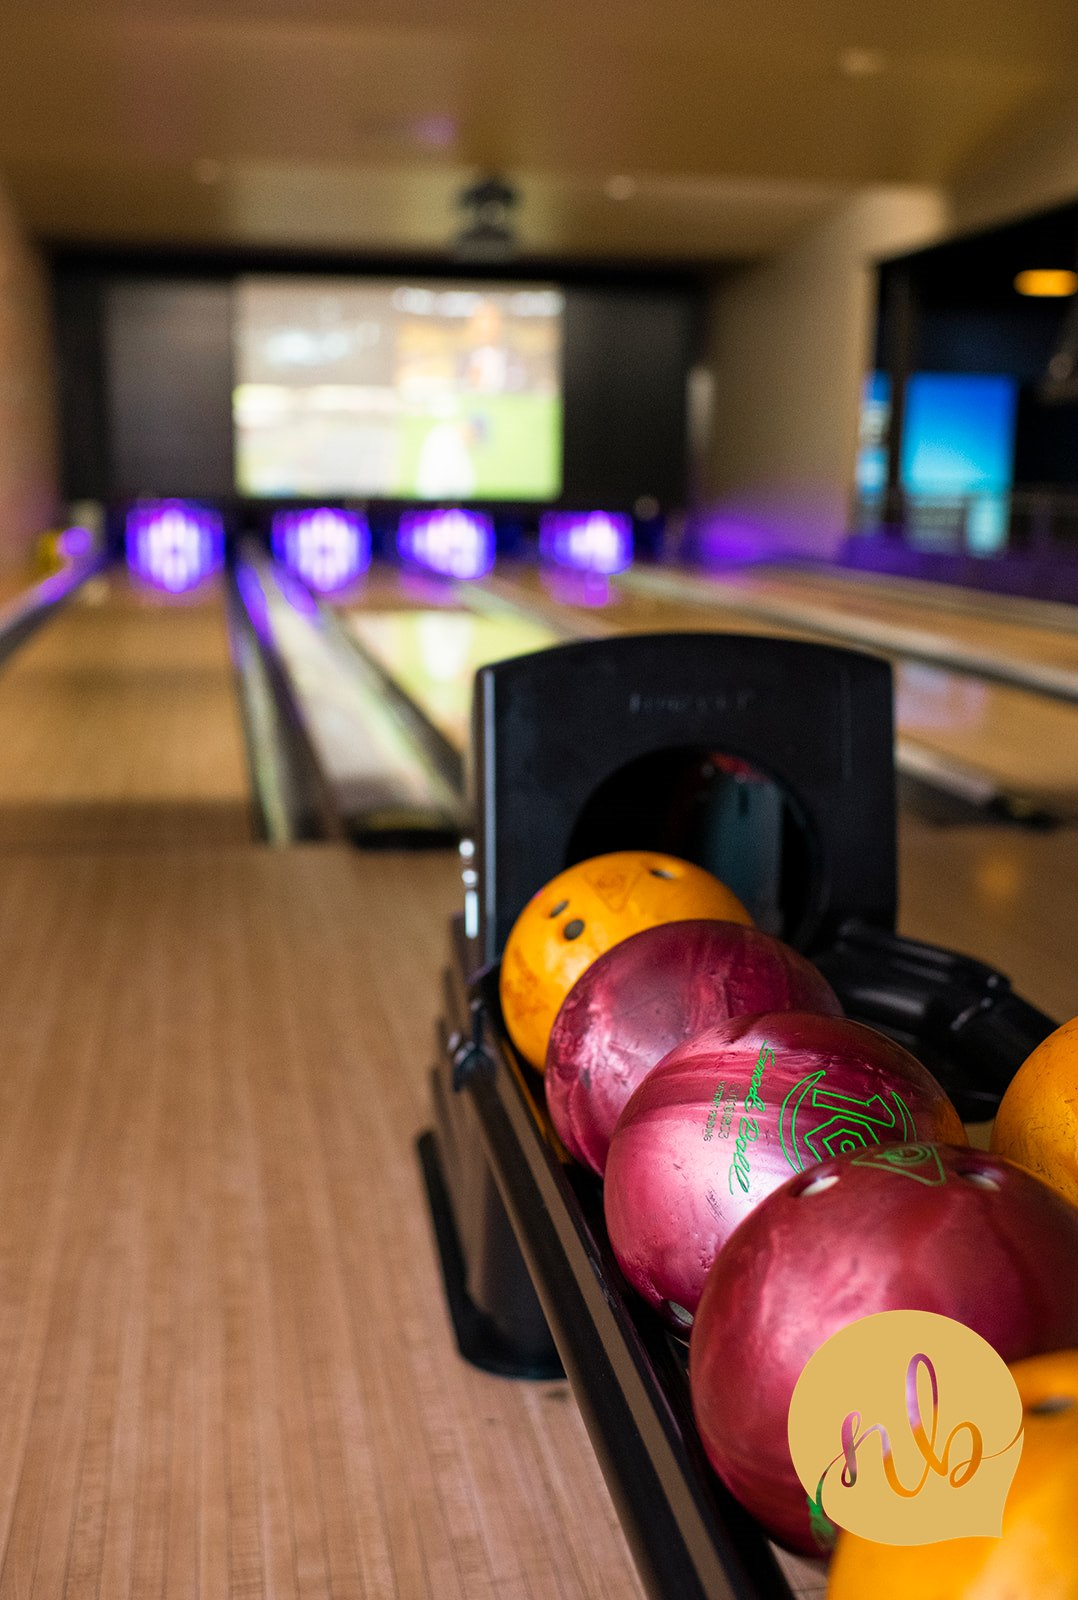 No_Other_Pub_Bowling_Alley___Nicole_Bissey_Photography_04.jpg